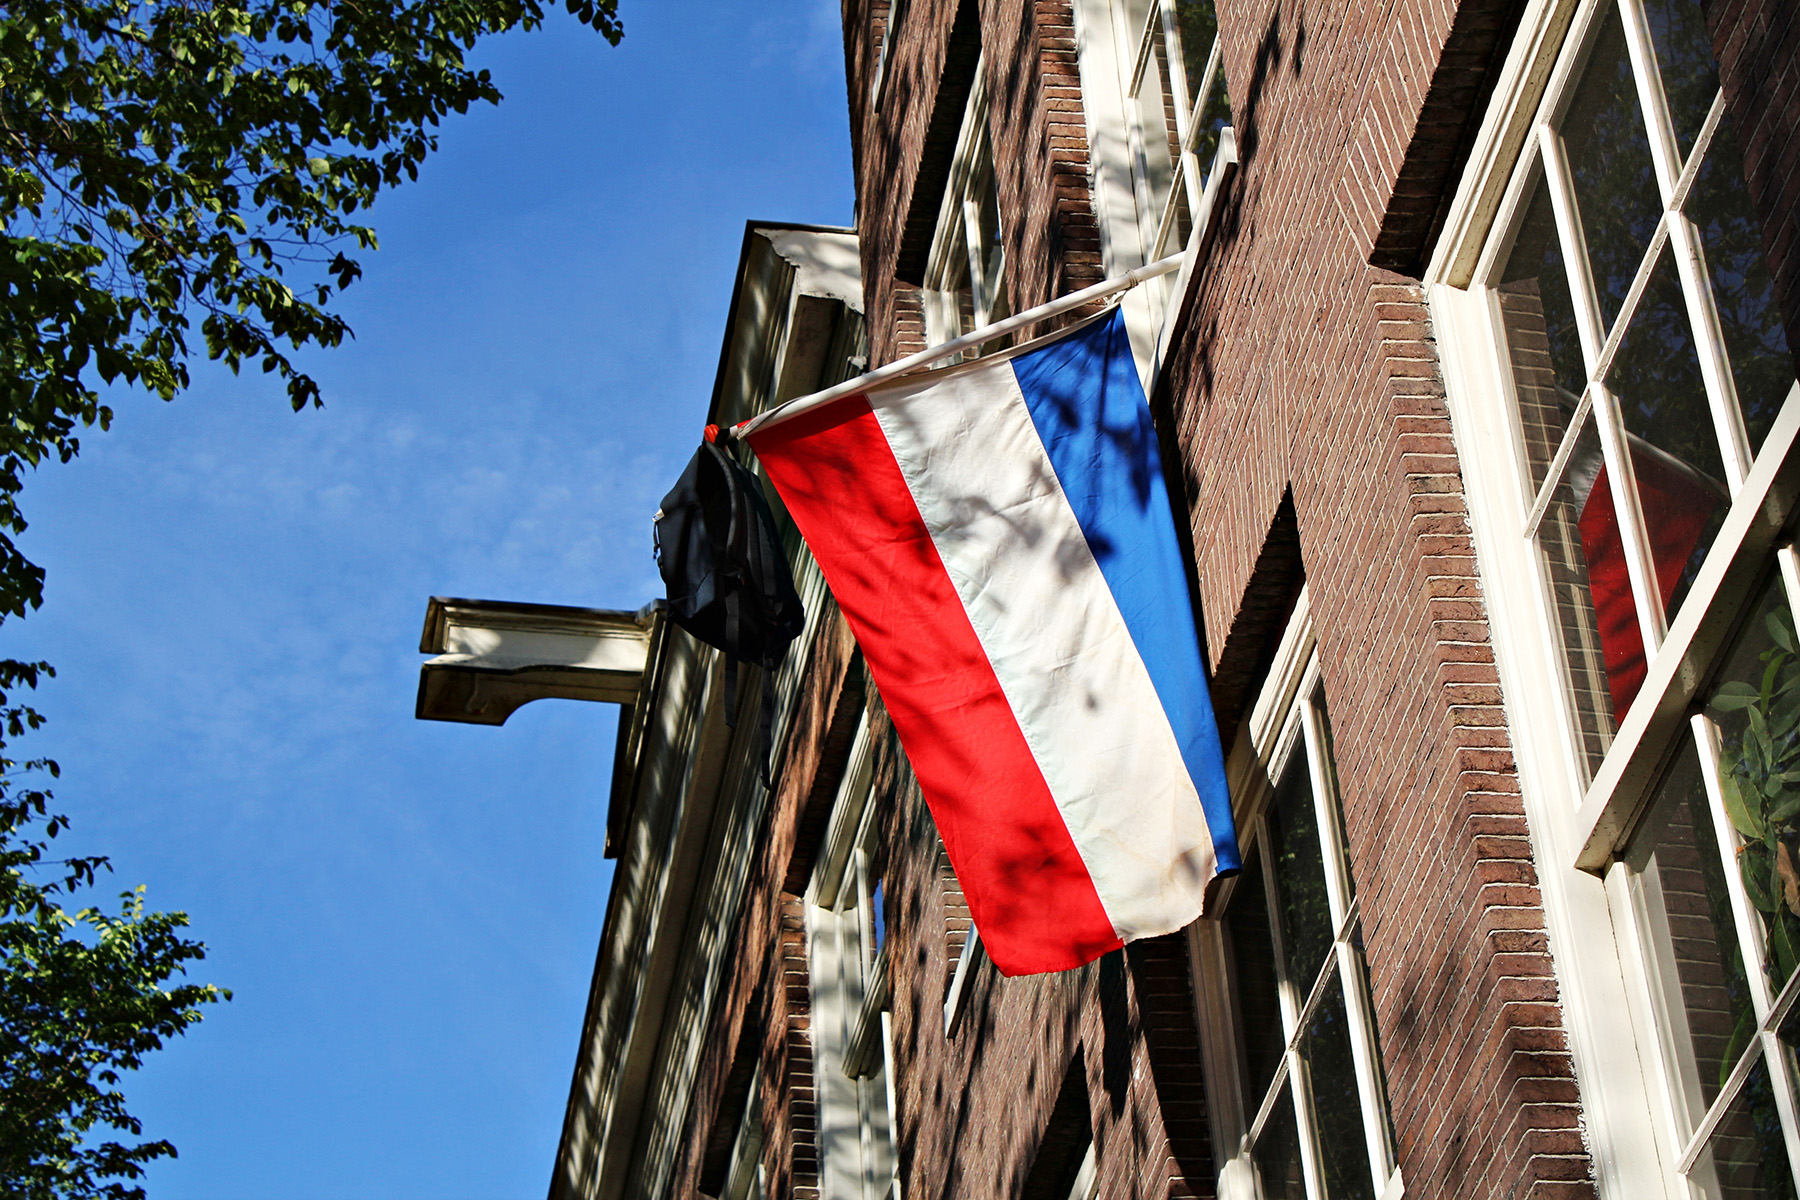 Students typically hang their backpack with a Dutch flag after completing their studies